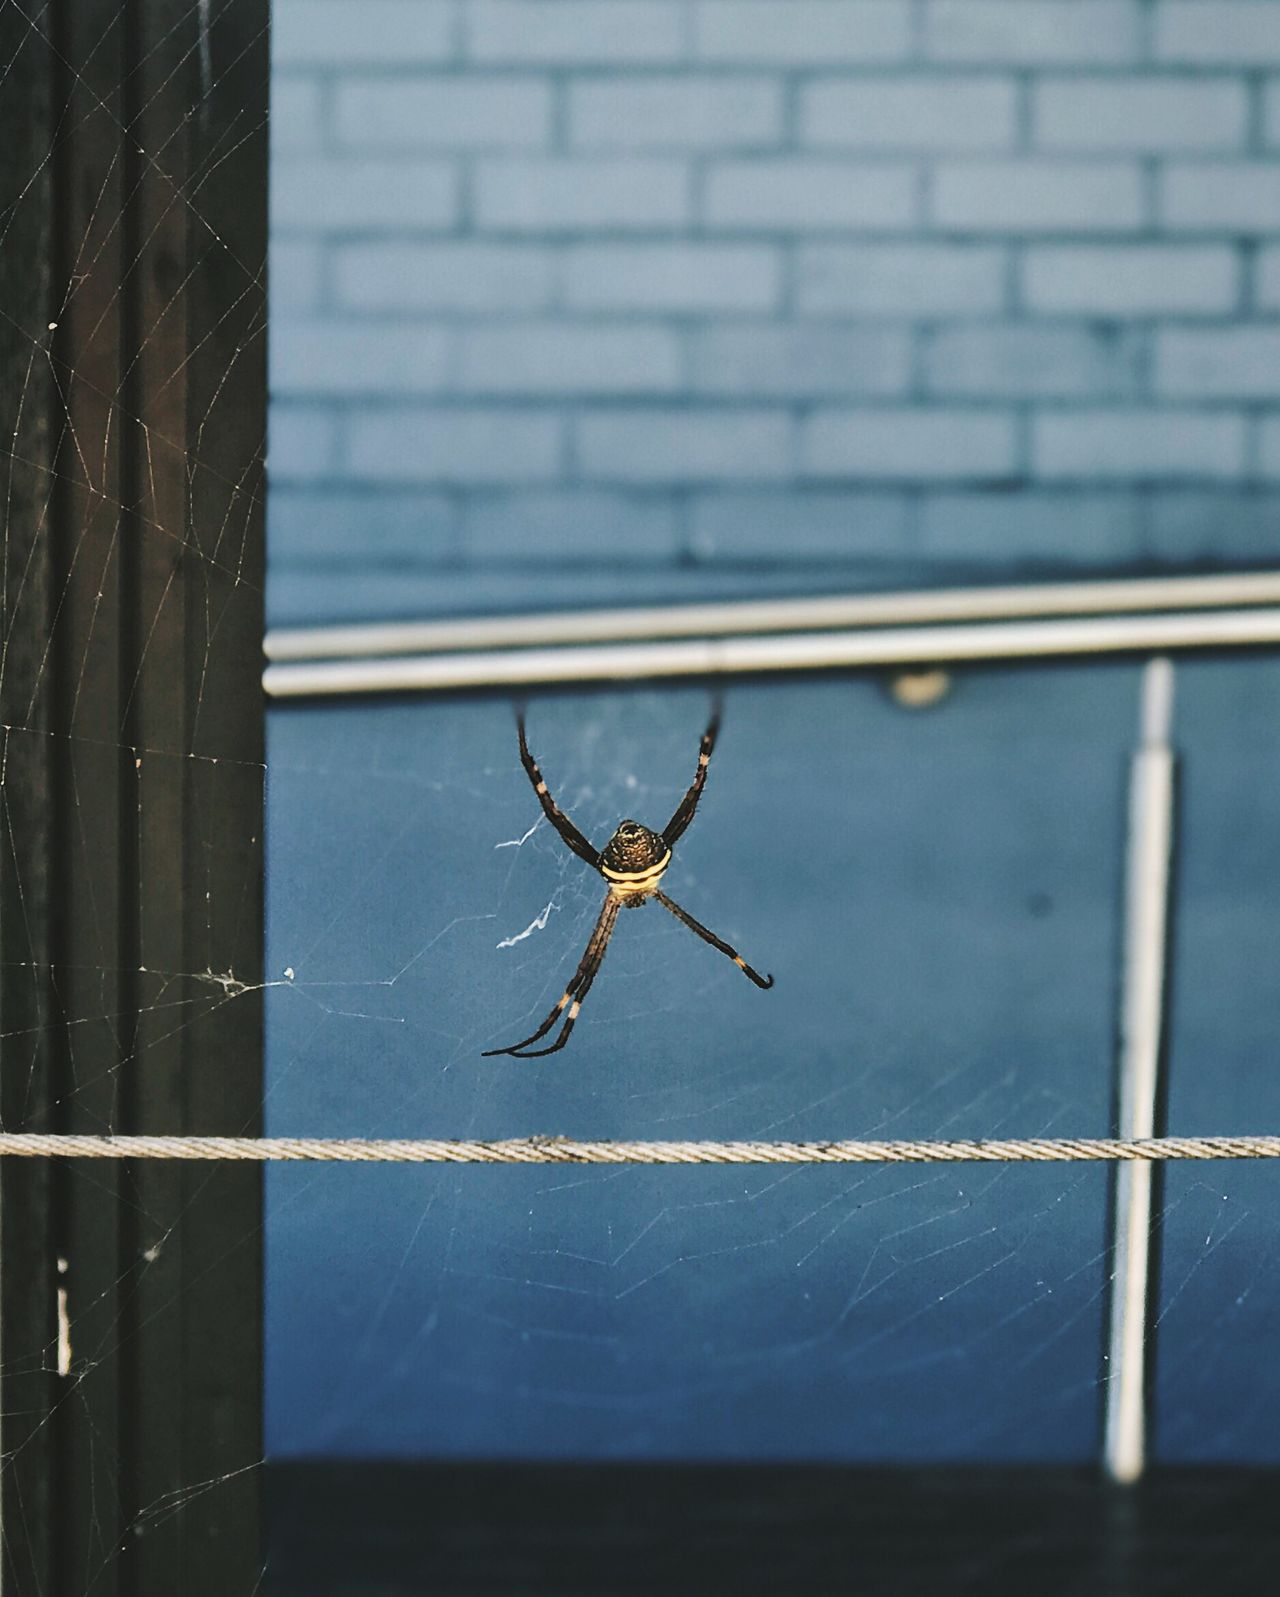 One Animal Animal Themes Spider Close-up Animals In The Wild No People Insect Spider Web Day Animal Wildlife Animal Leg Outdoors Nature Survival Web Streetphotography Street Photography